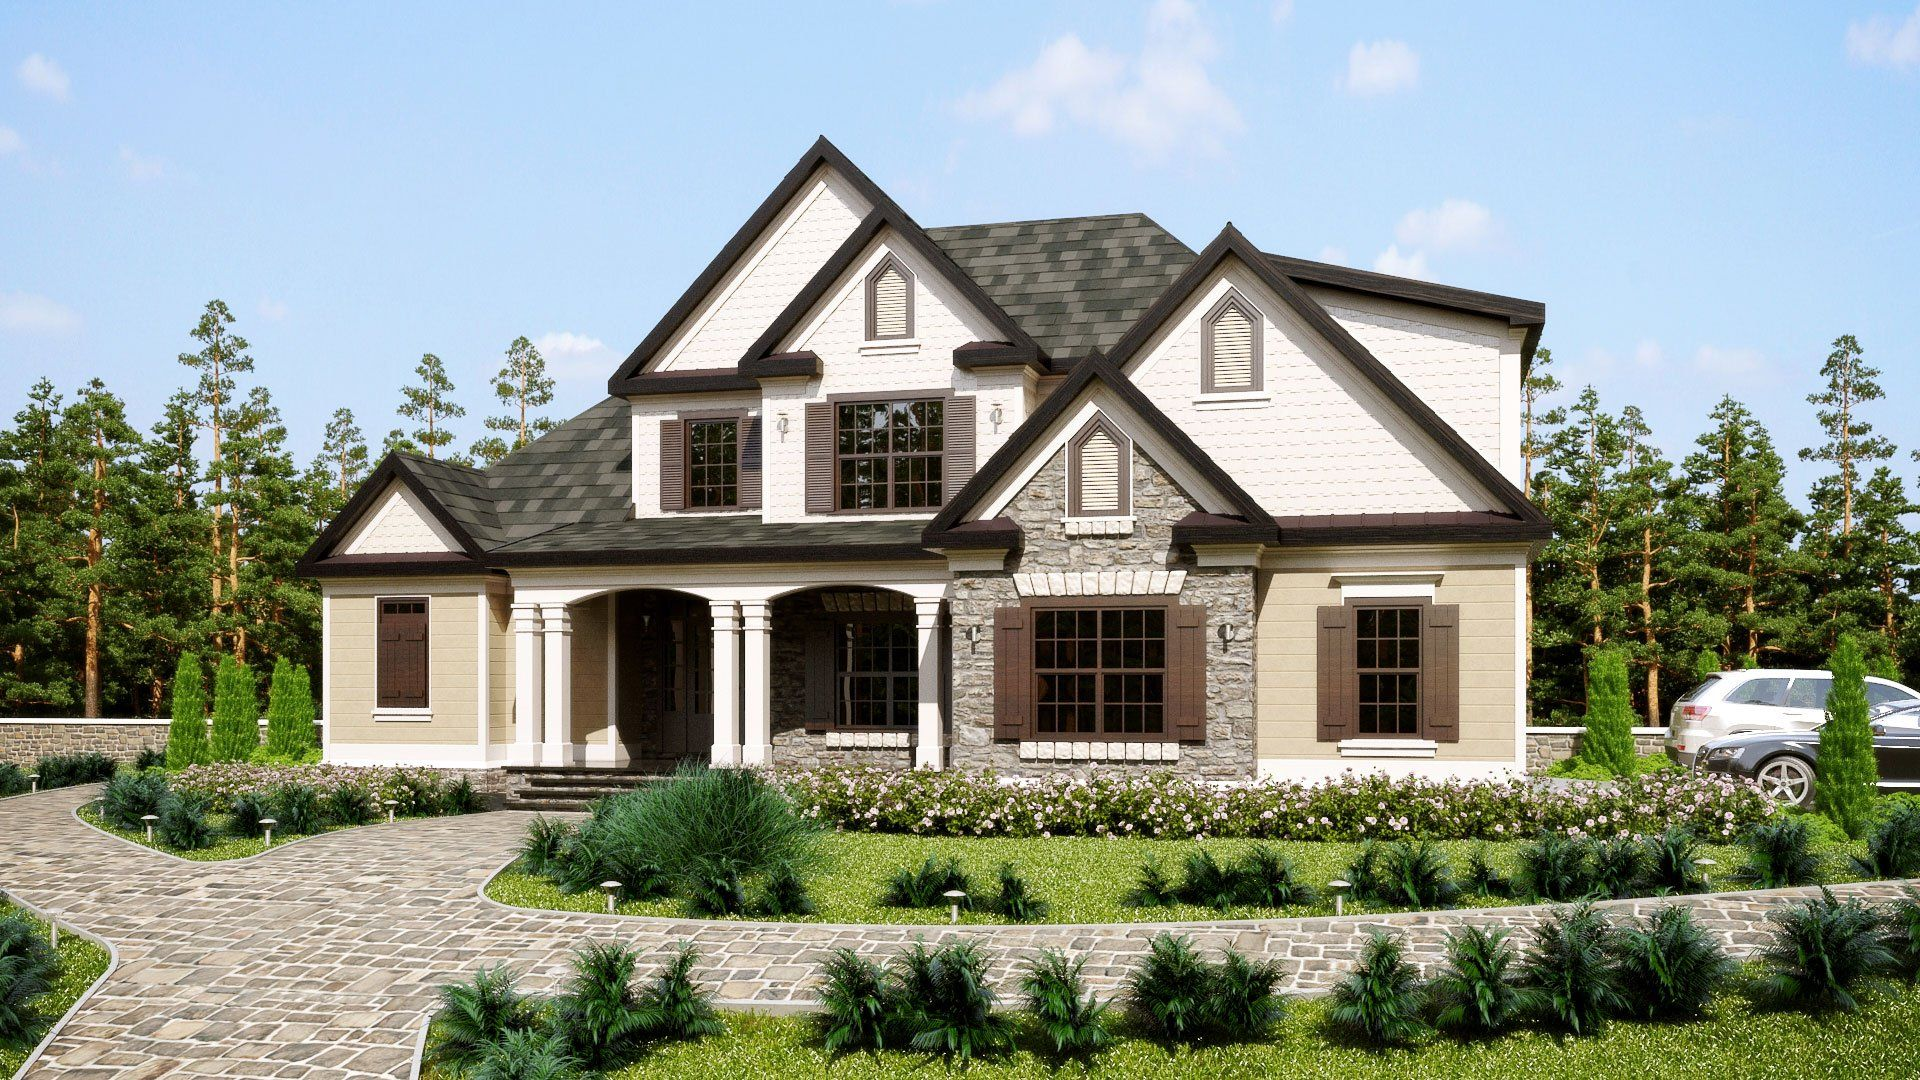 Three Story Southern Style House Plan with front porch ...